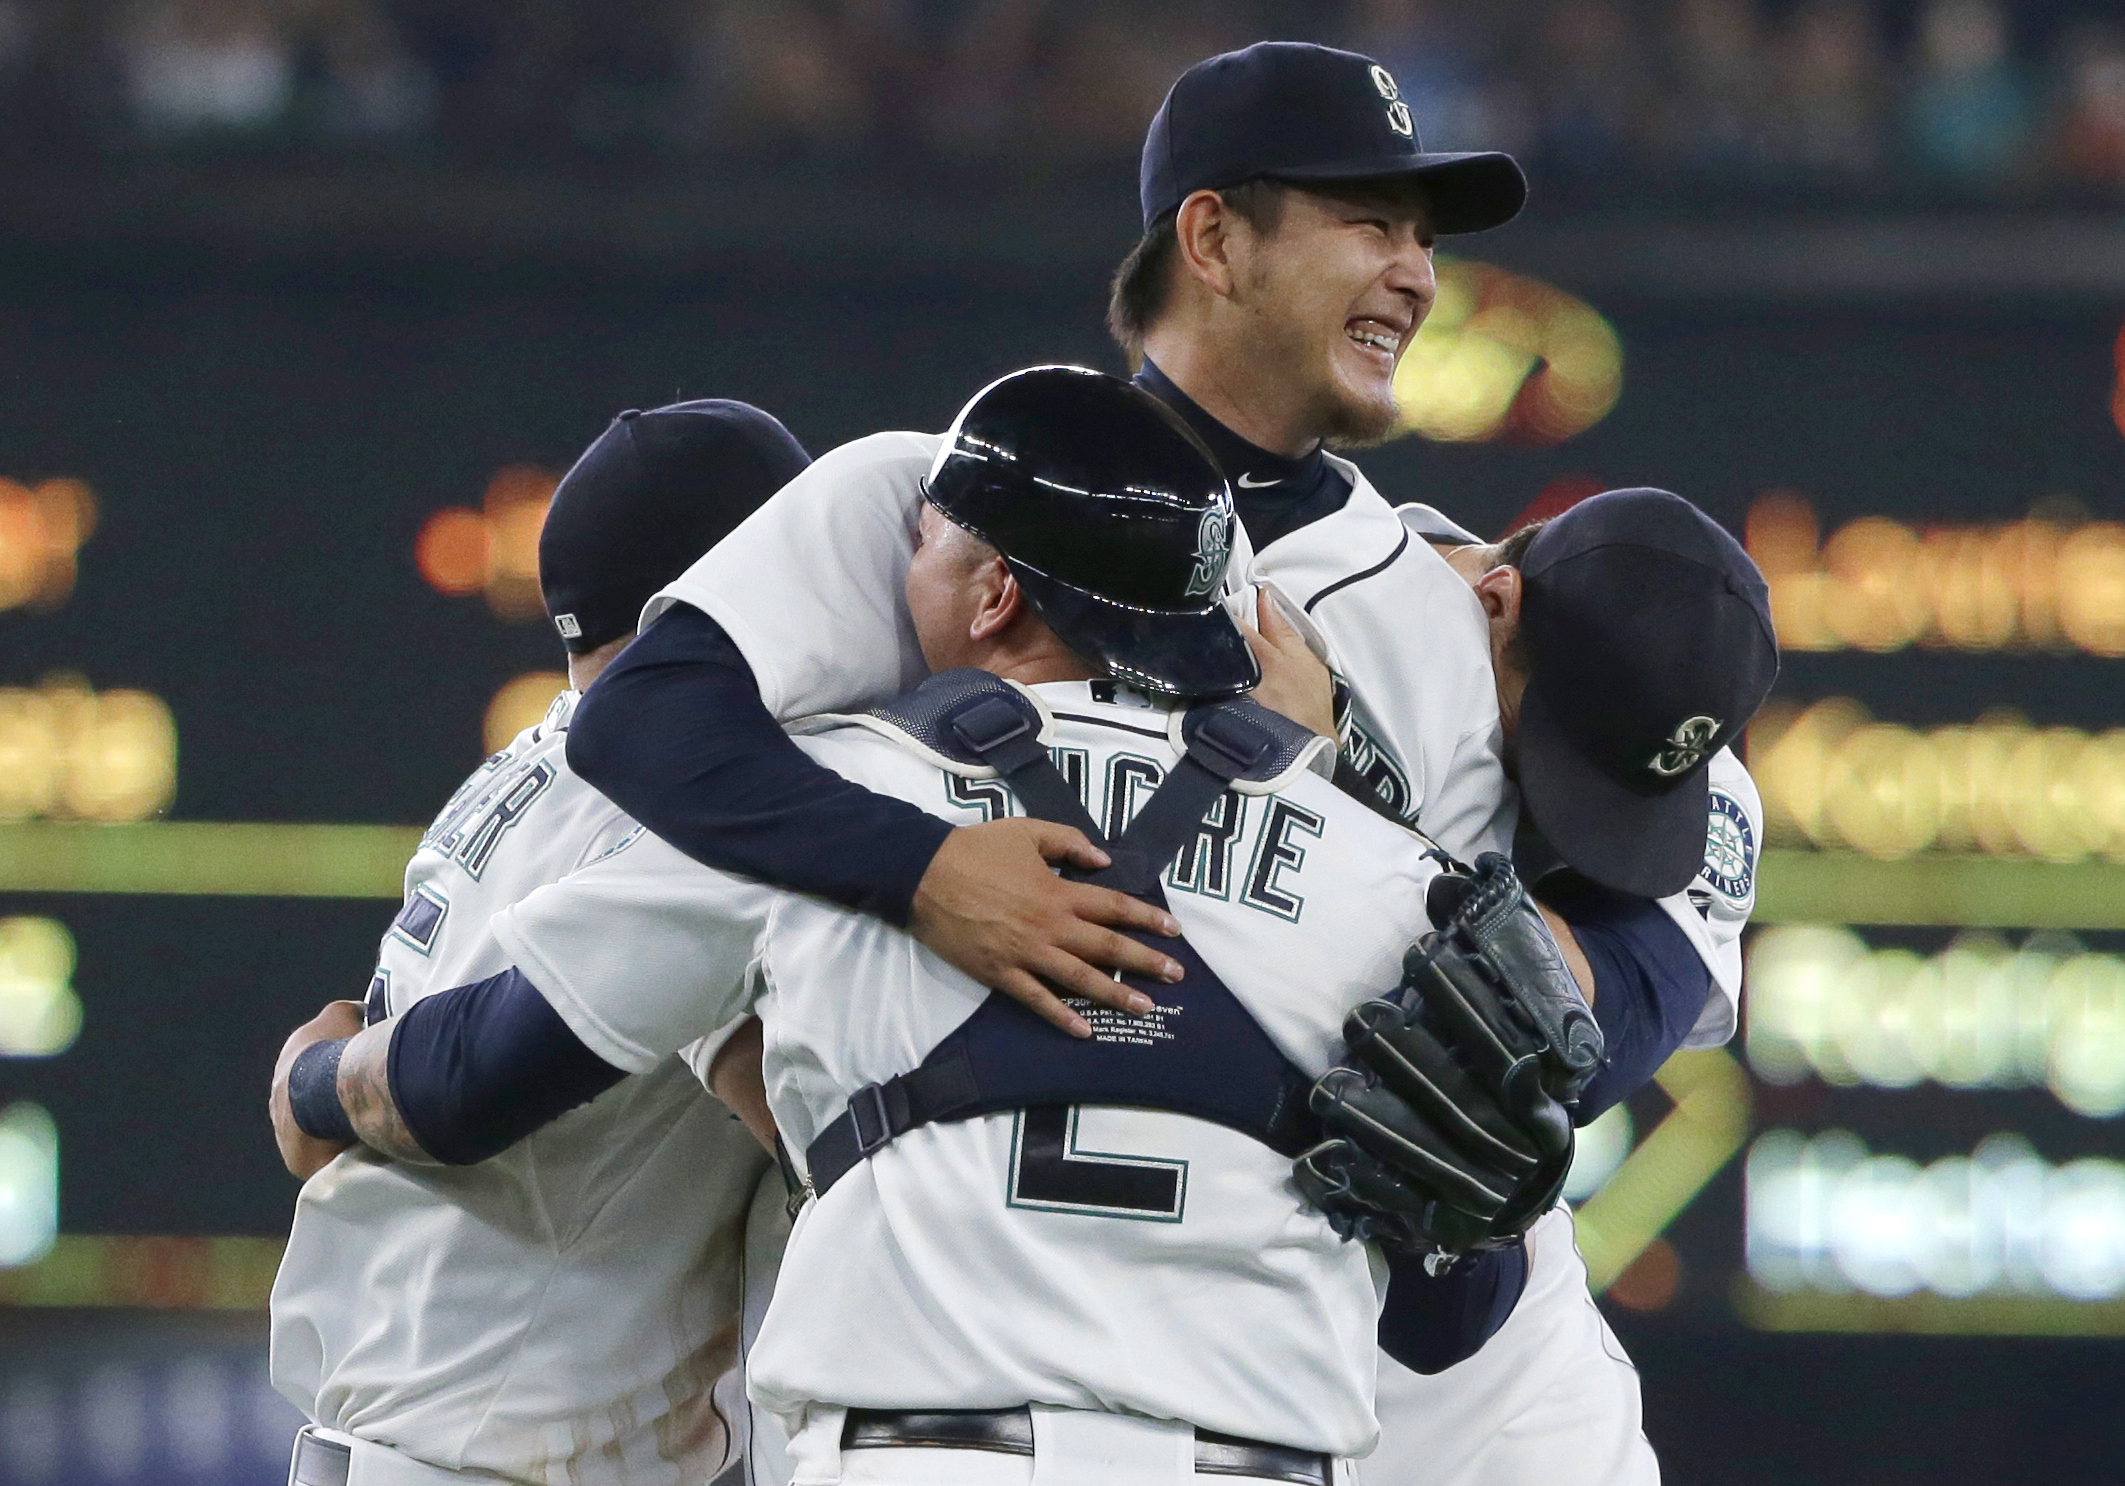 Seattle Mariners starting pitcher Hisashi Iwakuma, center, is mobbed by teammates, including catcher Jesus Sucre (2), after Iwakuma threw a no-hitter against the Baltimore Orioles in a baseball game Wednesday, Aug. 12, 2015, in Seattle. The Mariners won 3